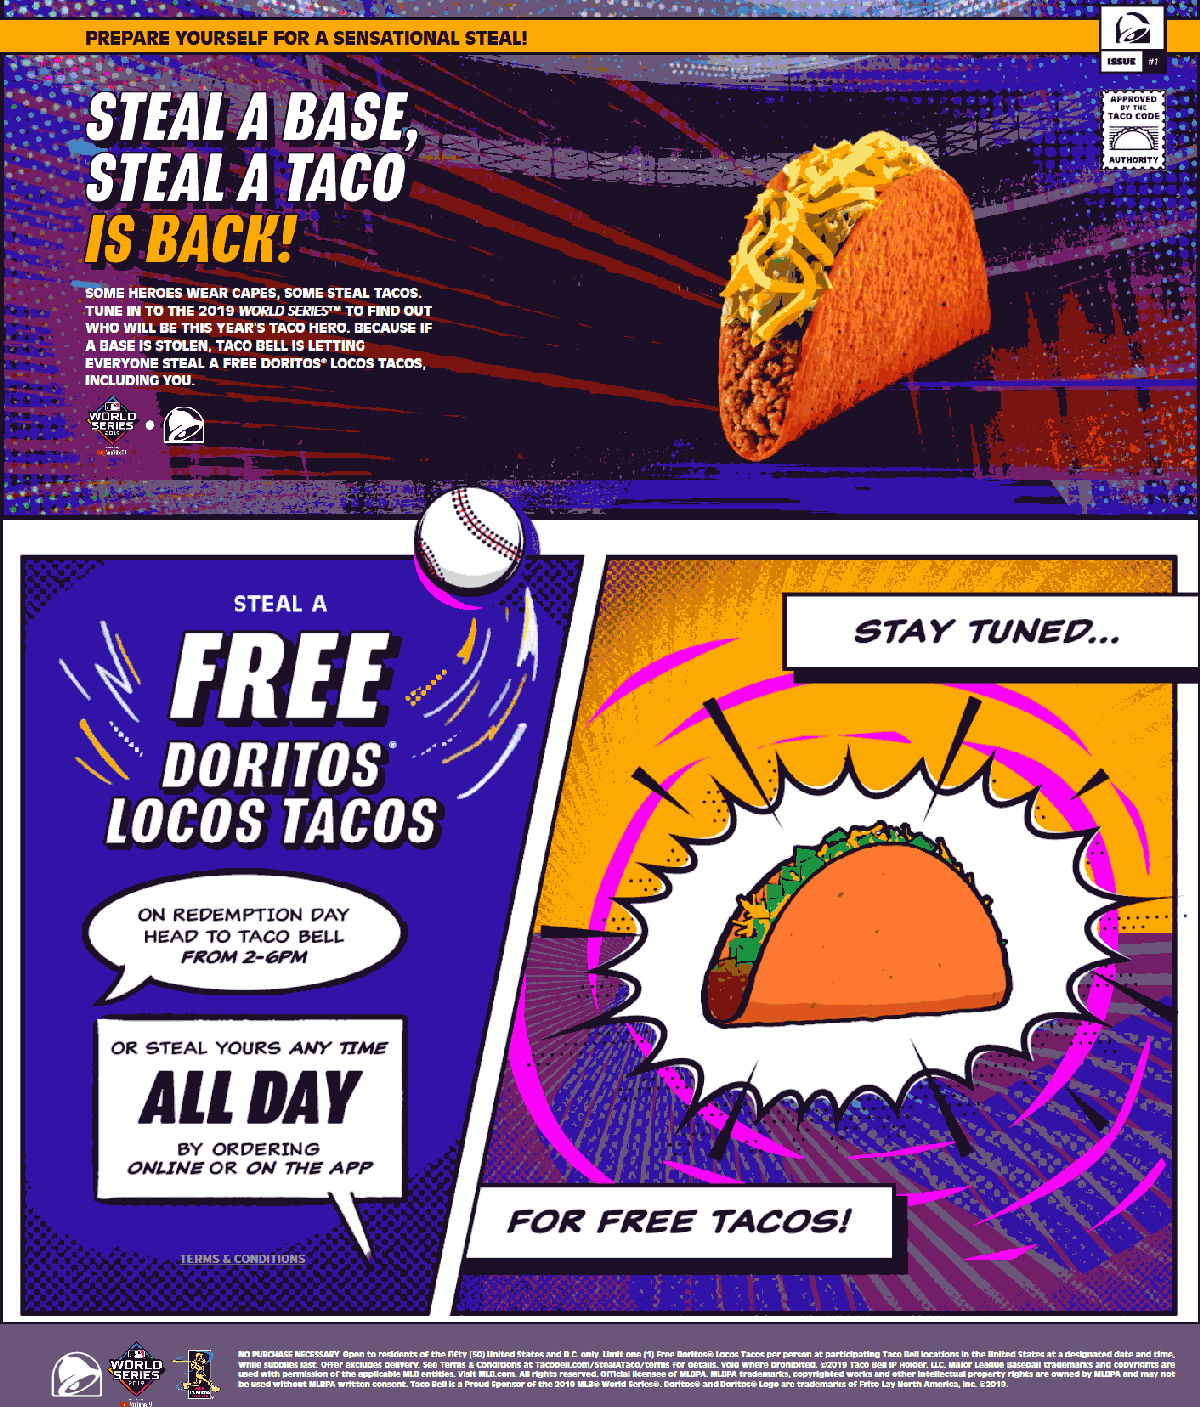 Taco Bell Coupon January 2020 Stolen world series base = free taco at Taco Bell